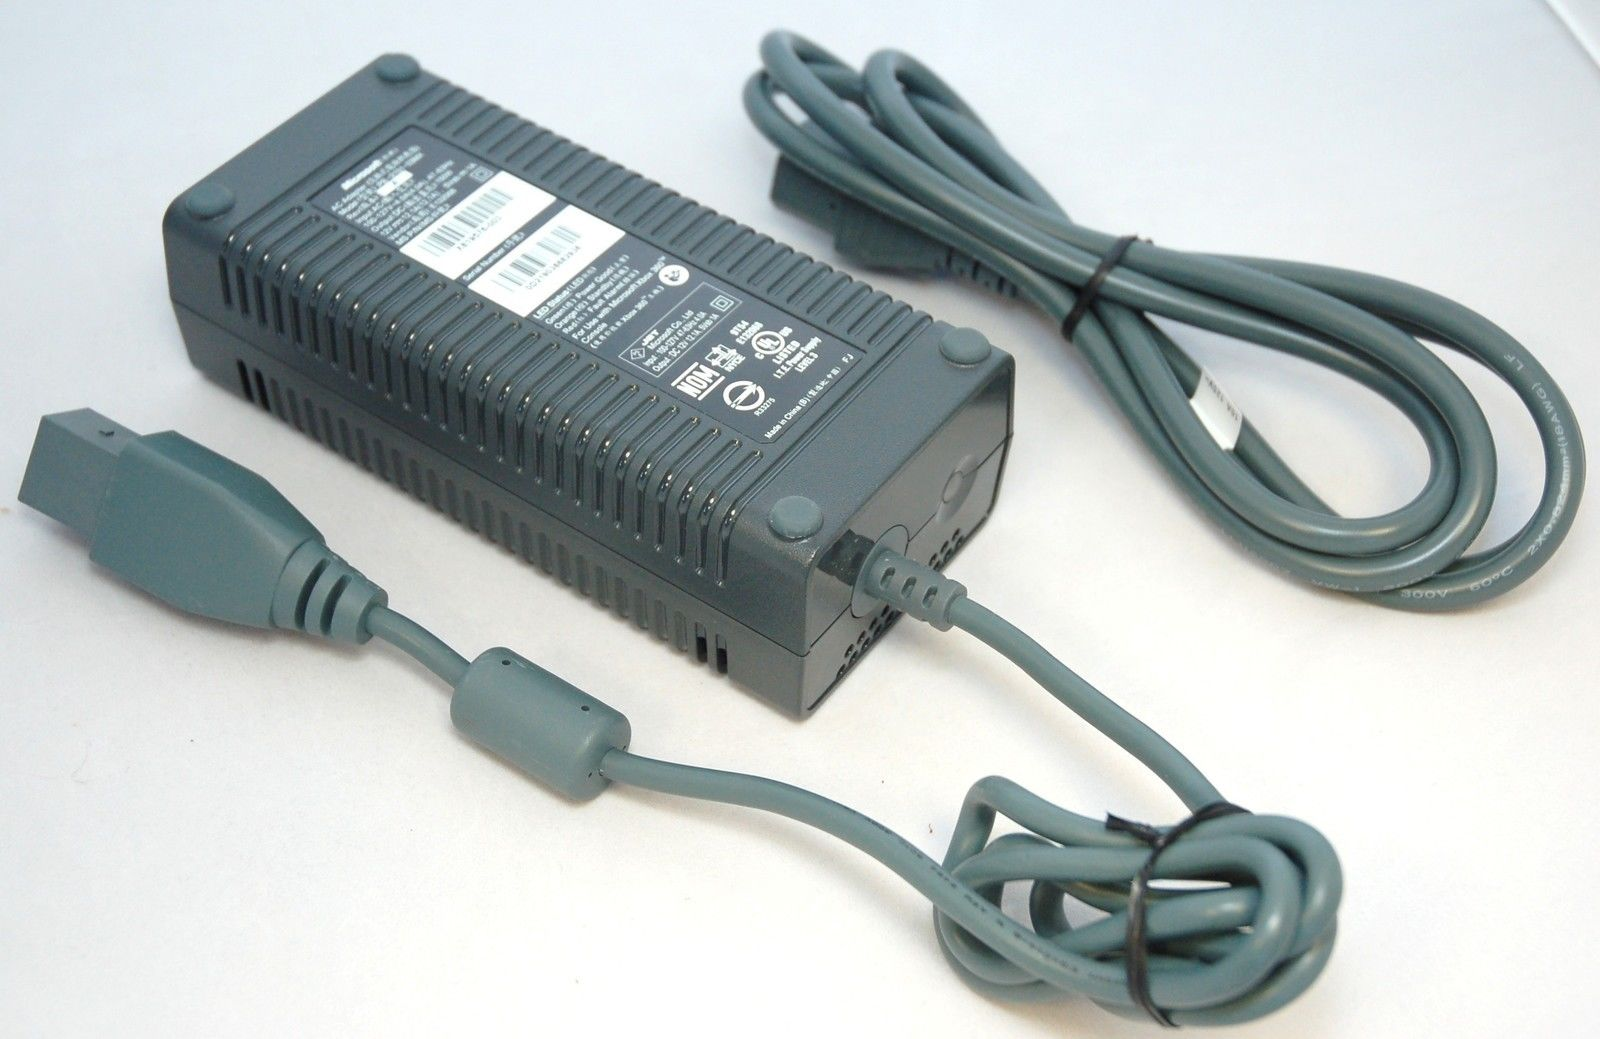 Microsoft HP-A1503R2 X819574-003 AC Adapter Power Cord Supply Charger Cable Wire Original Genuine